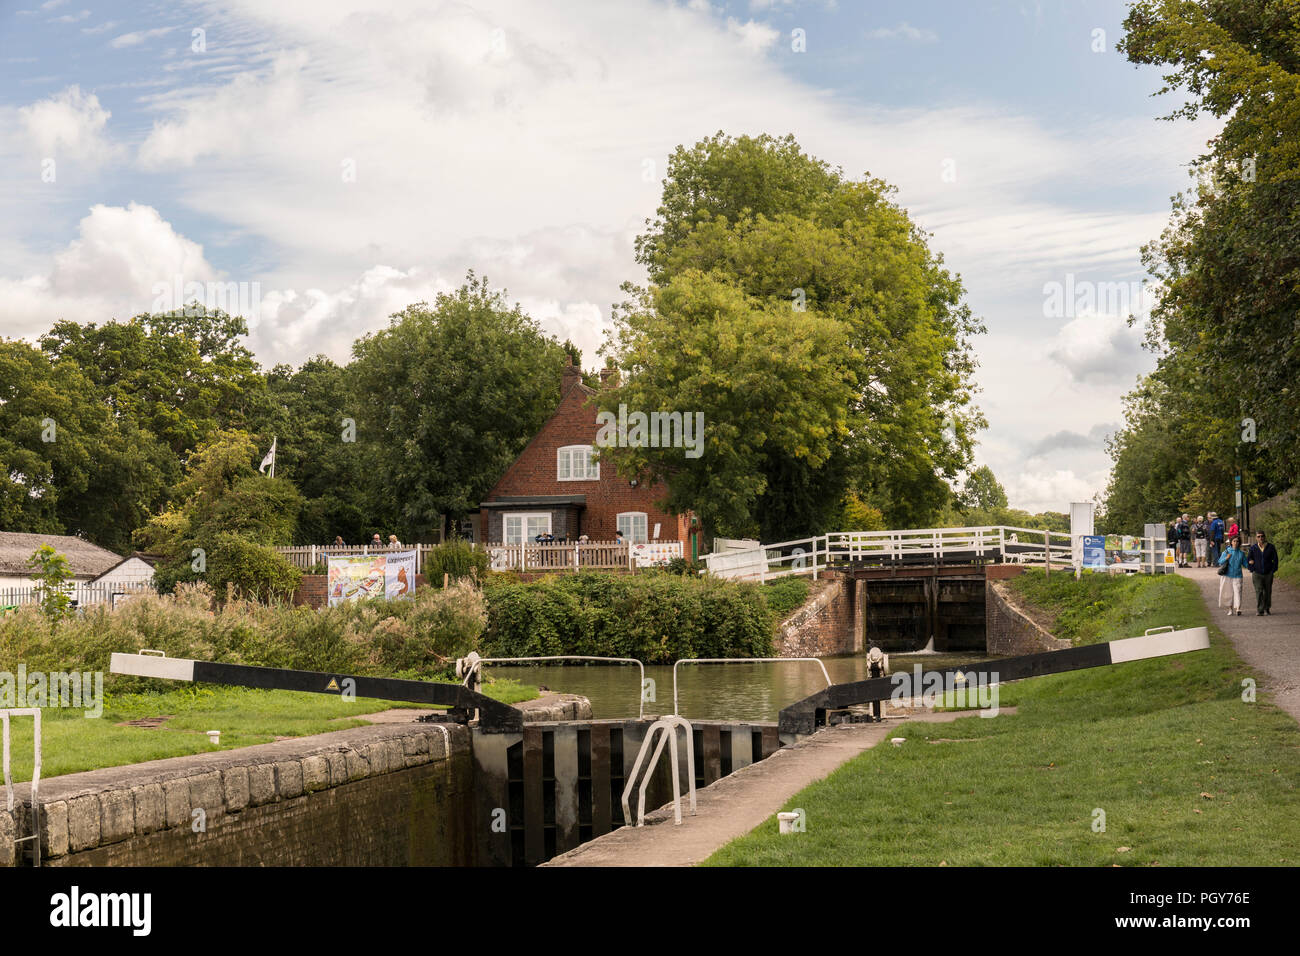 Caen Hill Cafe at the top of the continuous flight of 29 locks, Devizes, Wiltshire, UK - Stock Image